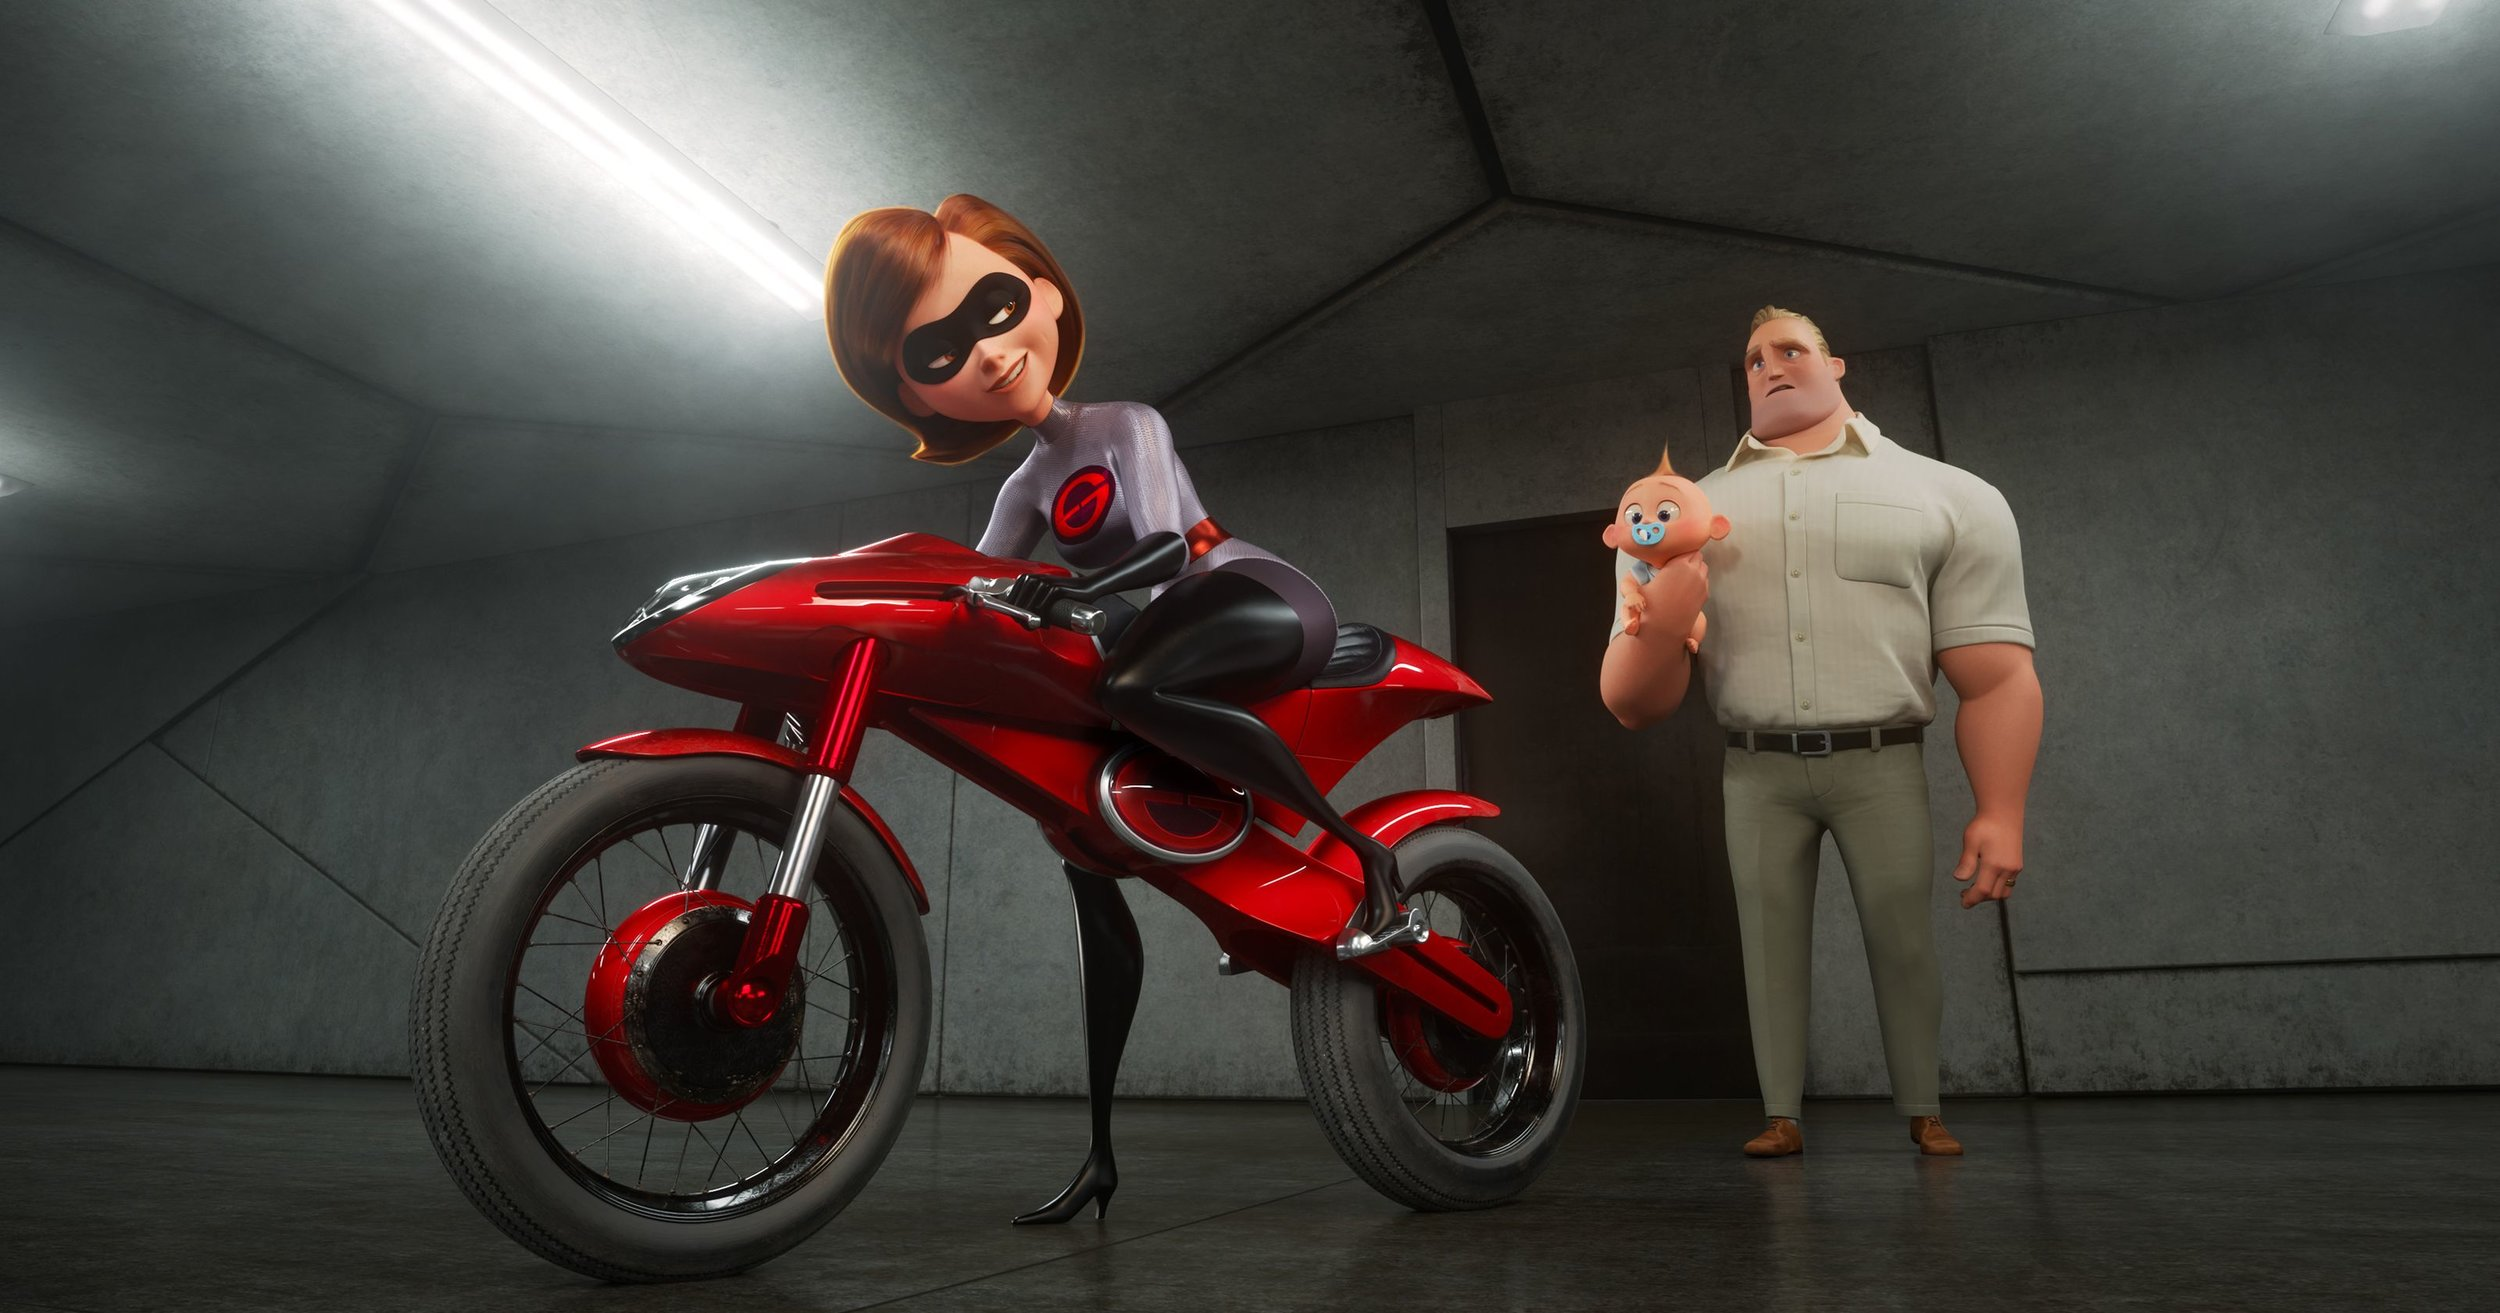 Elastigirl gets ready to fight crime on her new motorcycle while Mr. Incredible holds baby Jack=